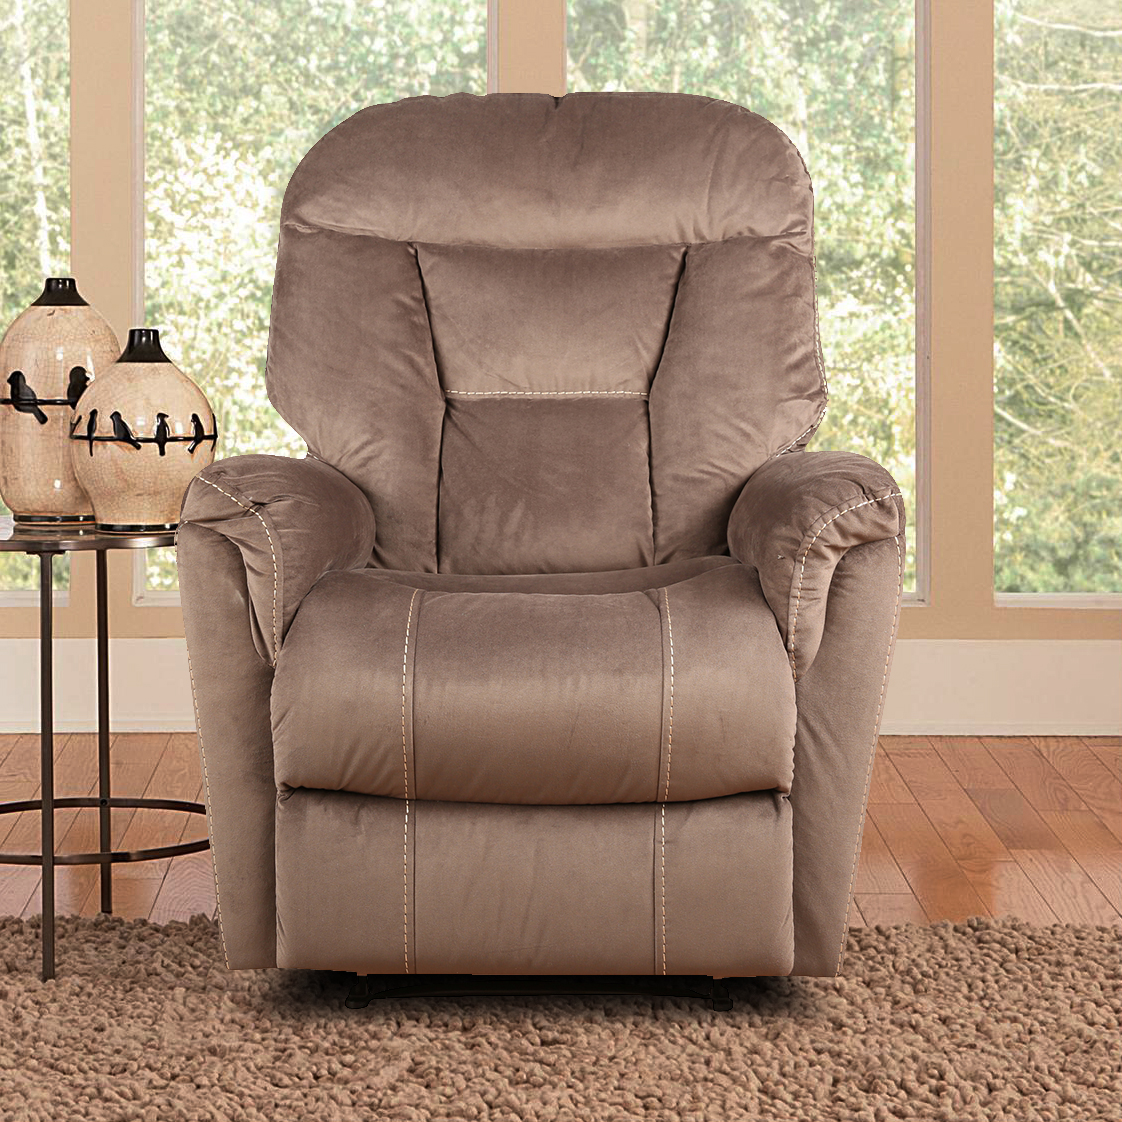 Rubens Fabric Single Seater Recliner in Brown Colour by HomeTown